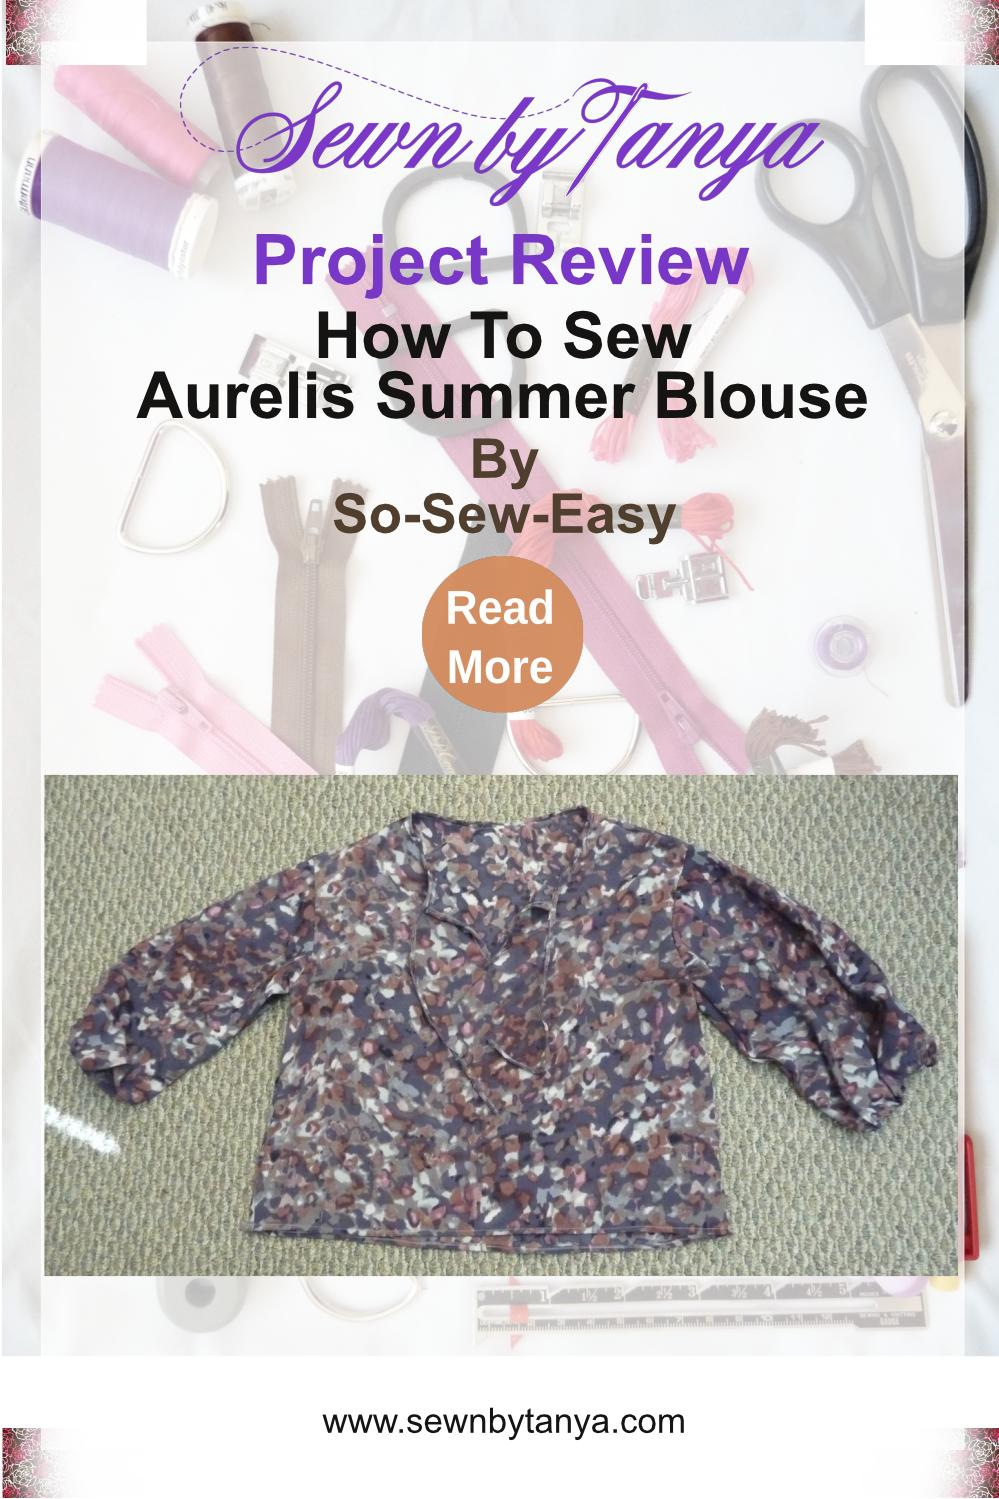 """Text """"Sewn By Tanya Project Review: How To Sew Aurelis Summer Blouse by So-Sew-Easy Read More"""" Image: multicolored shirt on a grey background"""